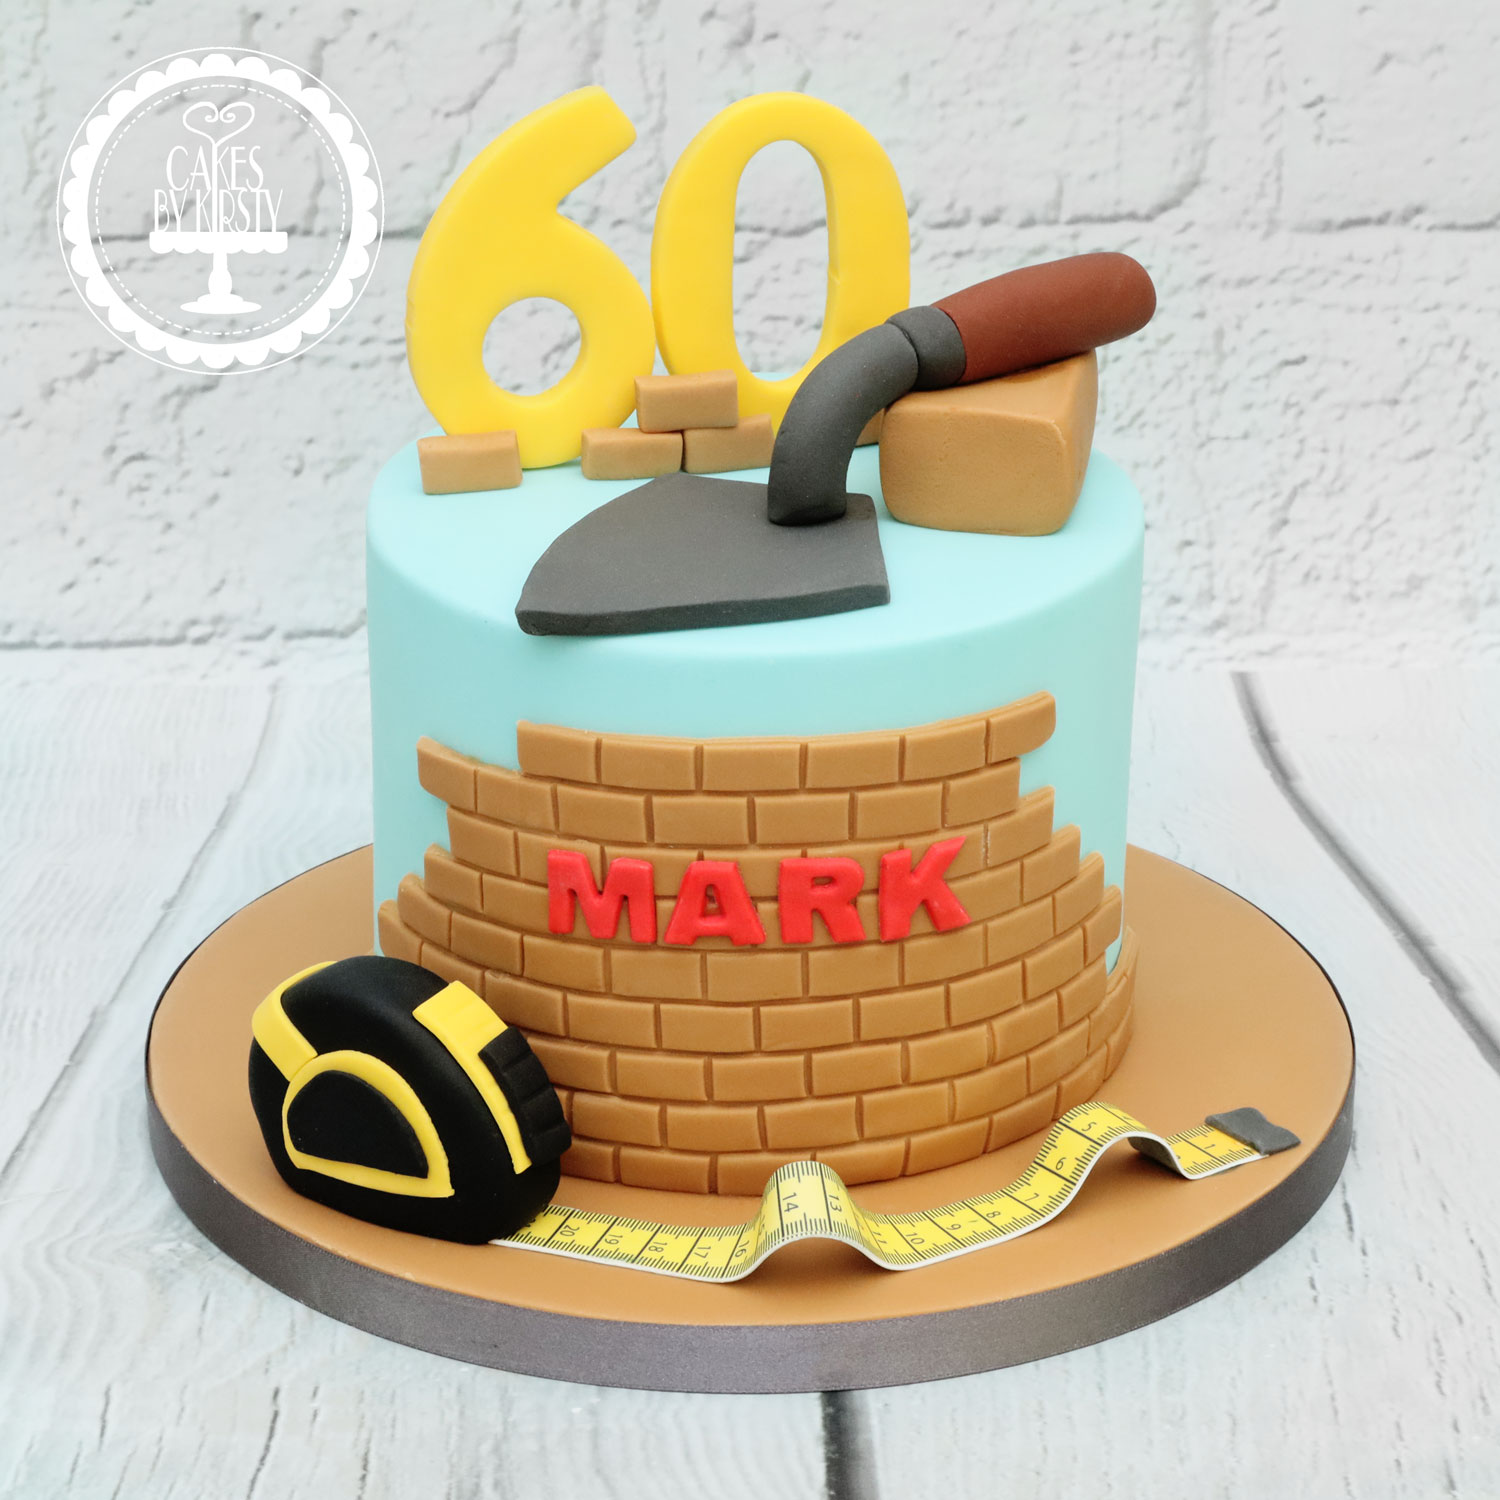 20191220 - Bricklayers 60th Birthday Cak